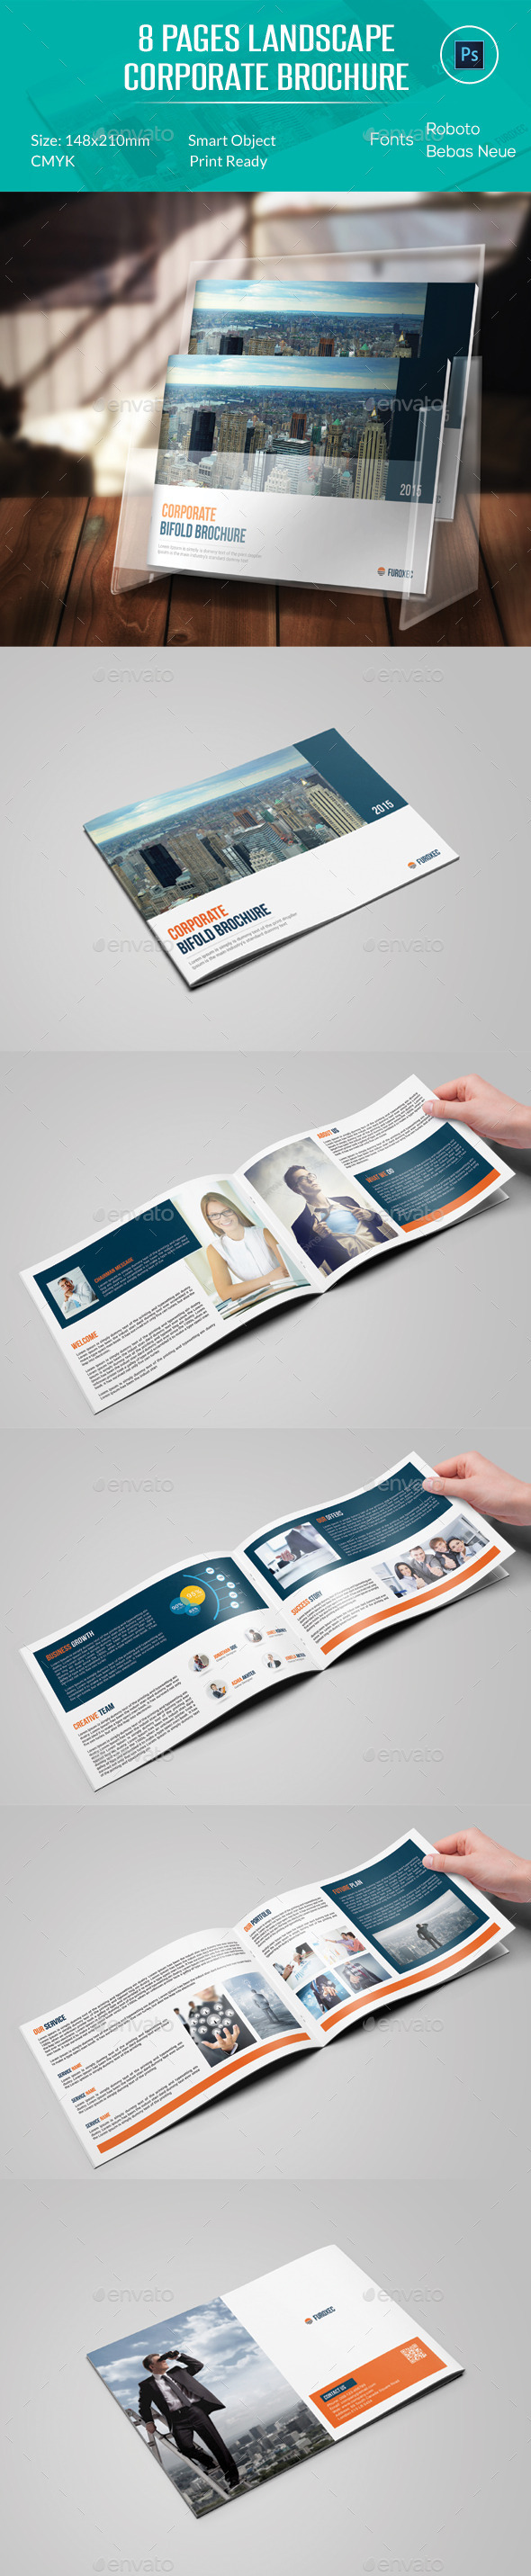 8 Pages Landscape Corporate Brochure